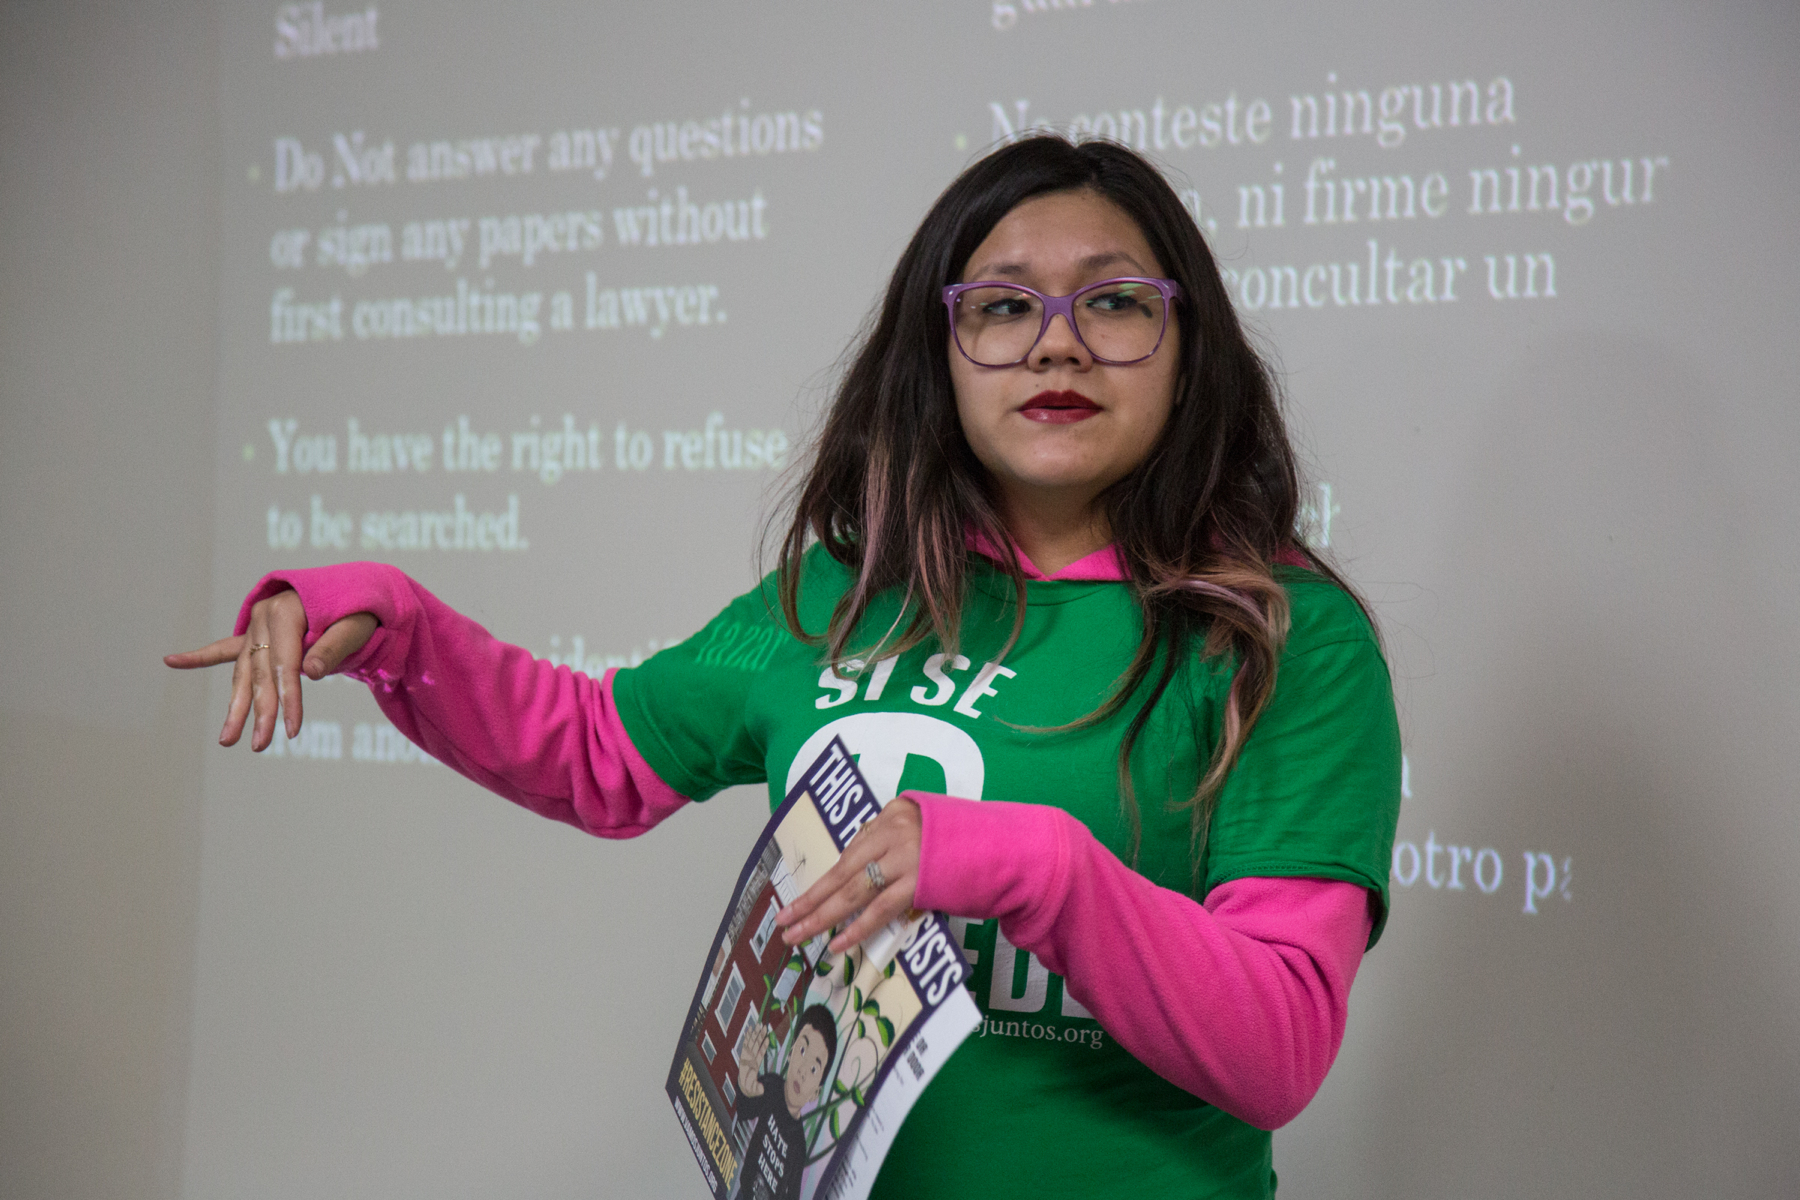 Olivia Vazquez, the community organizer for Juntos, teaches participants about their rights when ICE comes to their home.